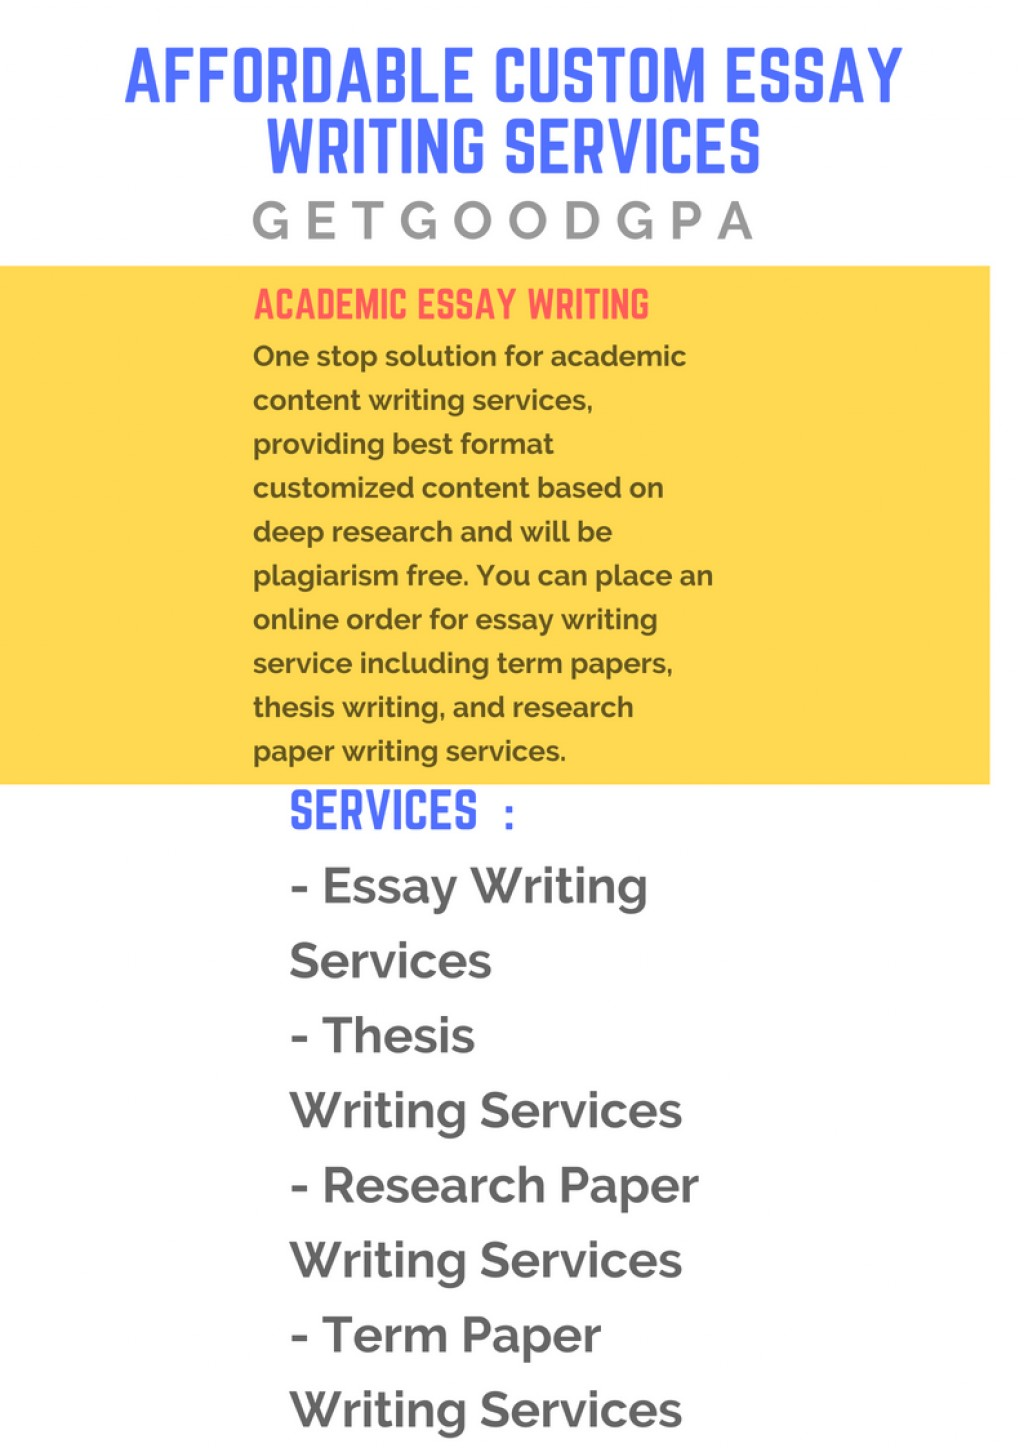 002 Research Paper Writing Services Archaicawful In Delhi Service Reviews Large